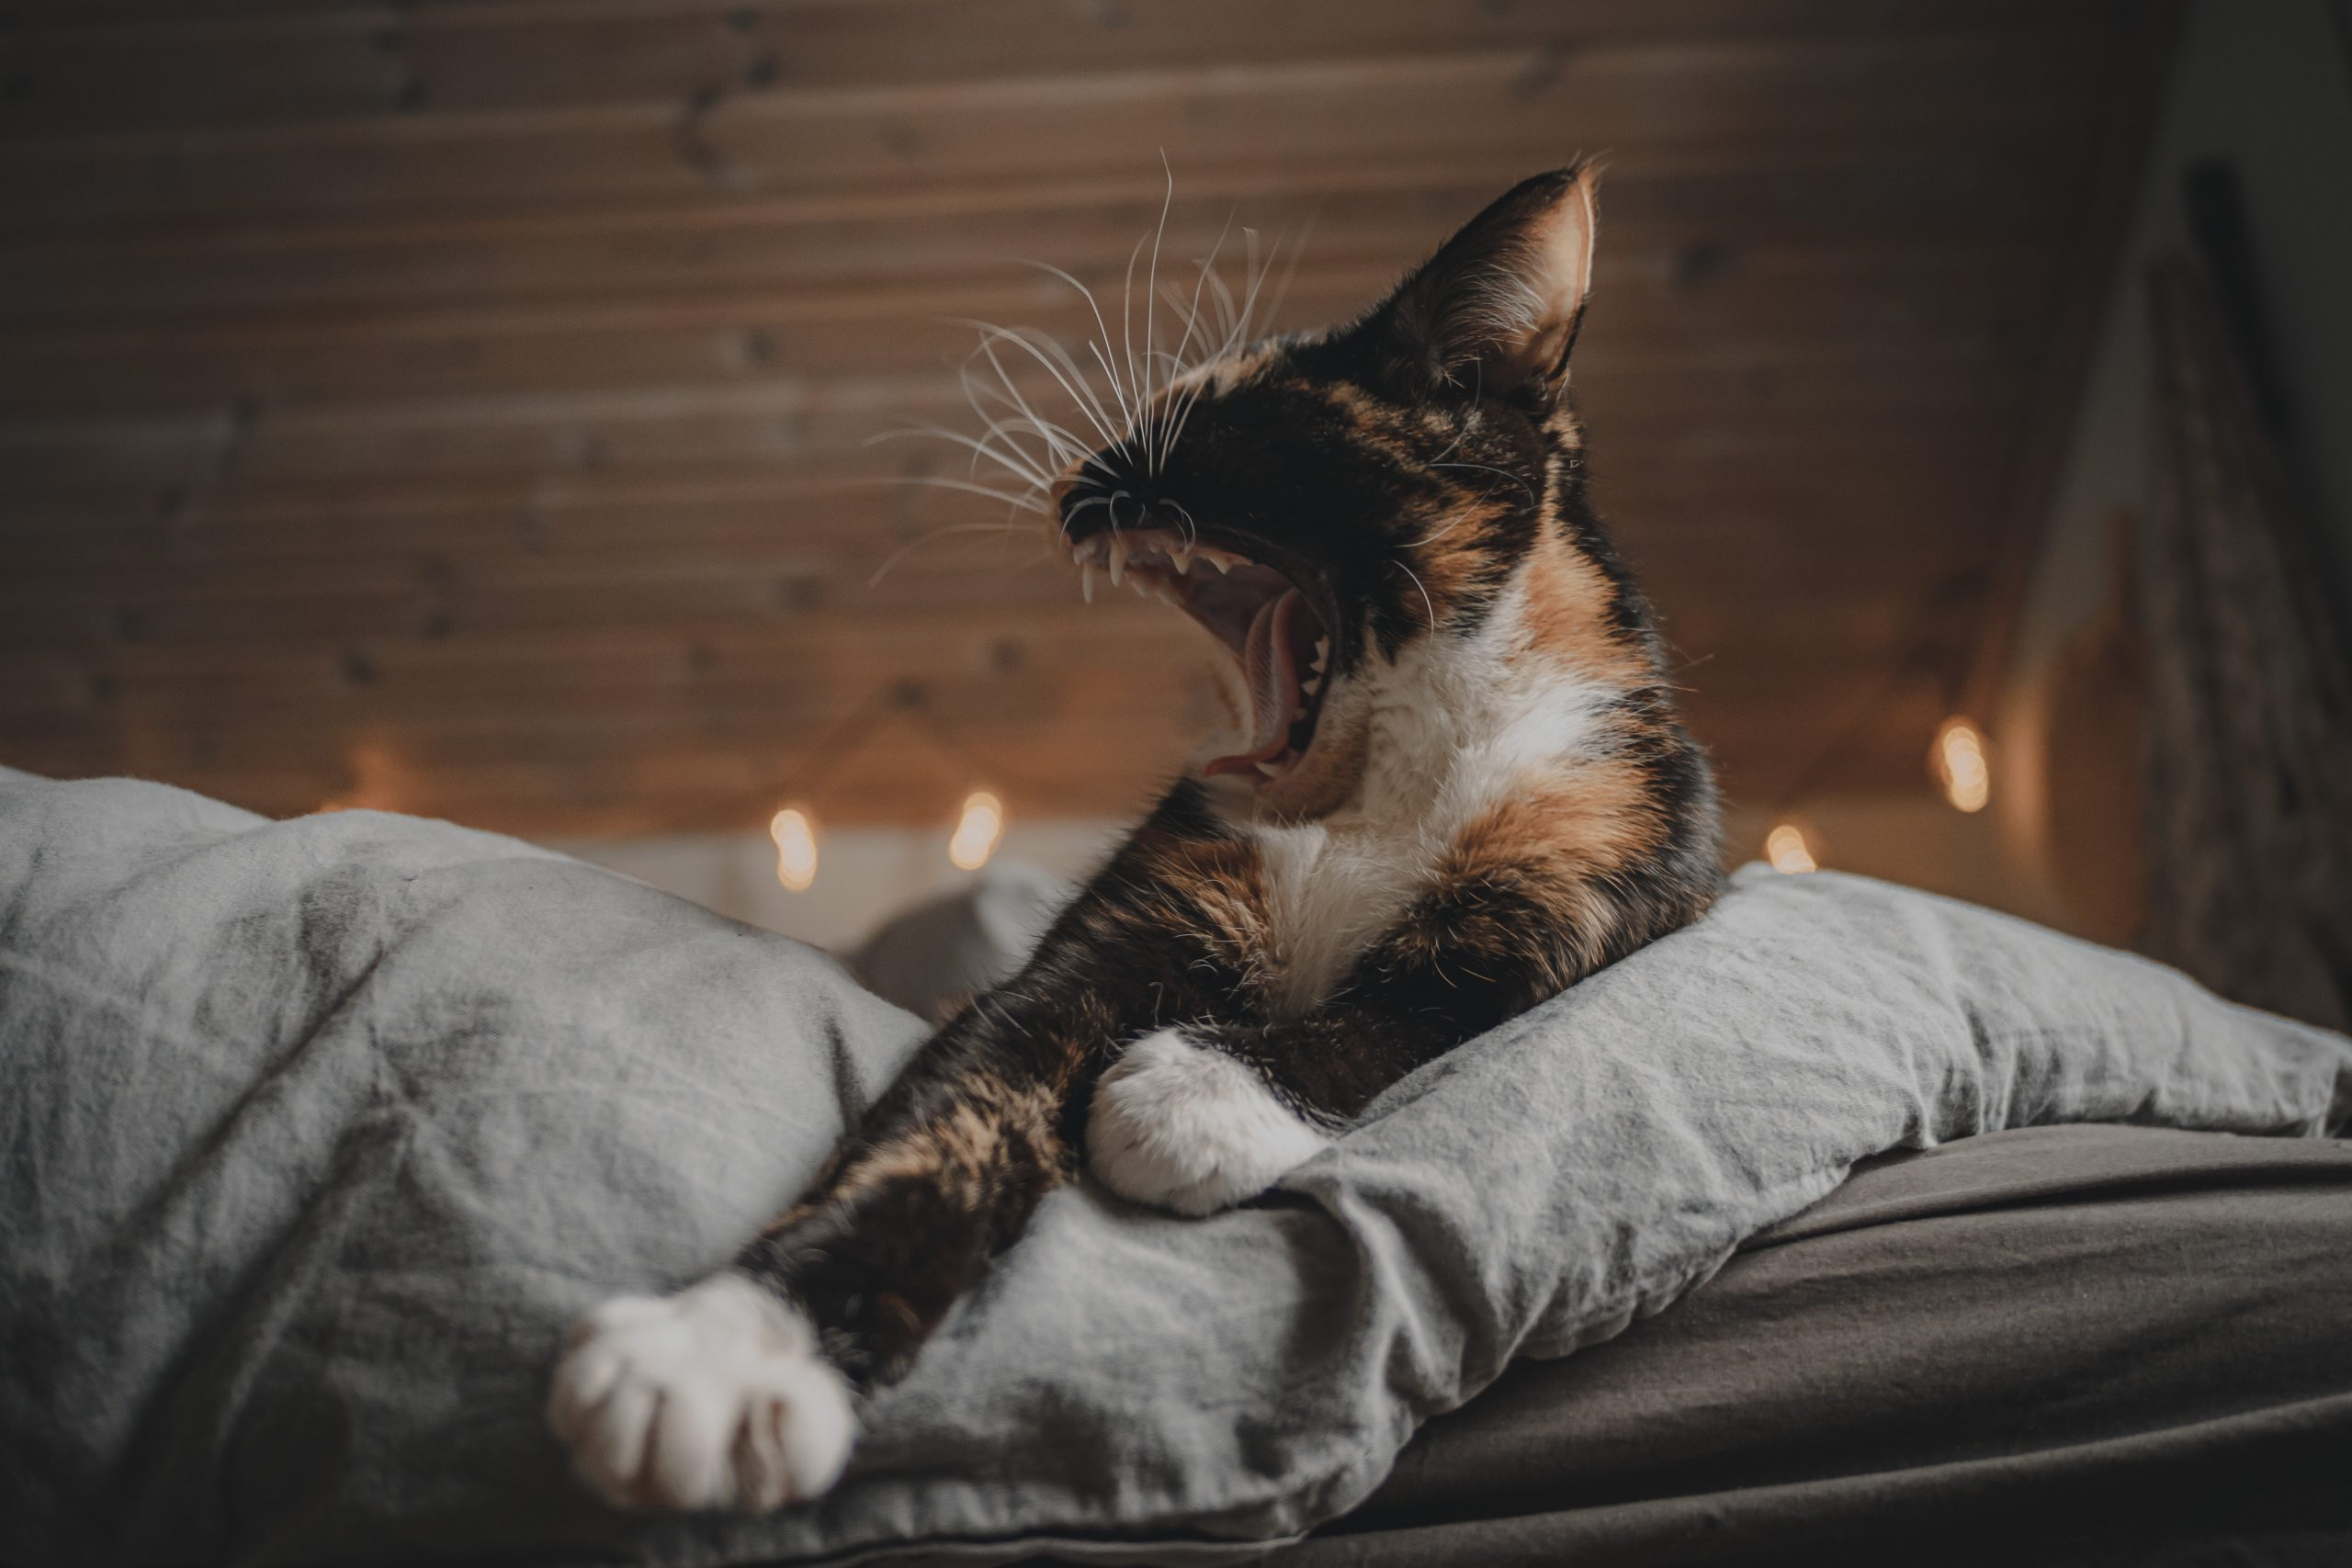 cat yawning in bed